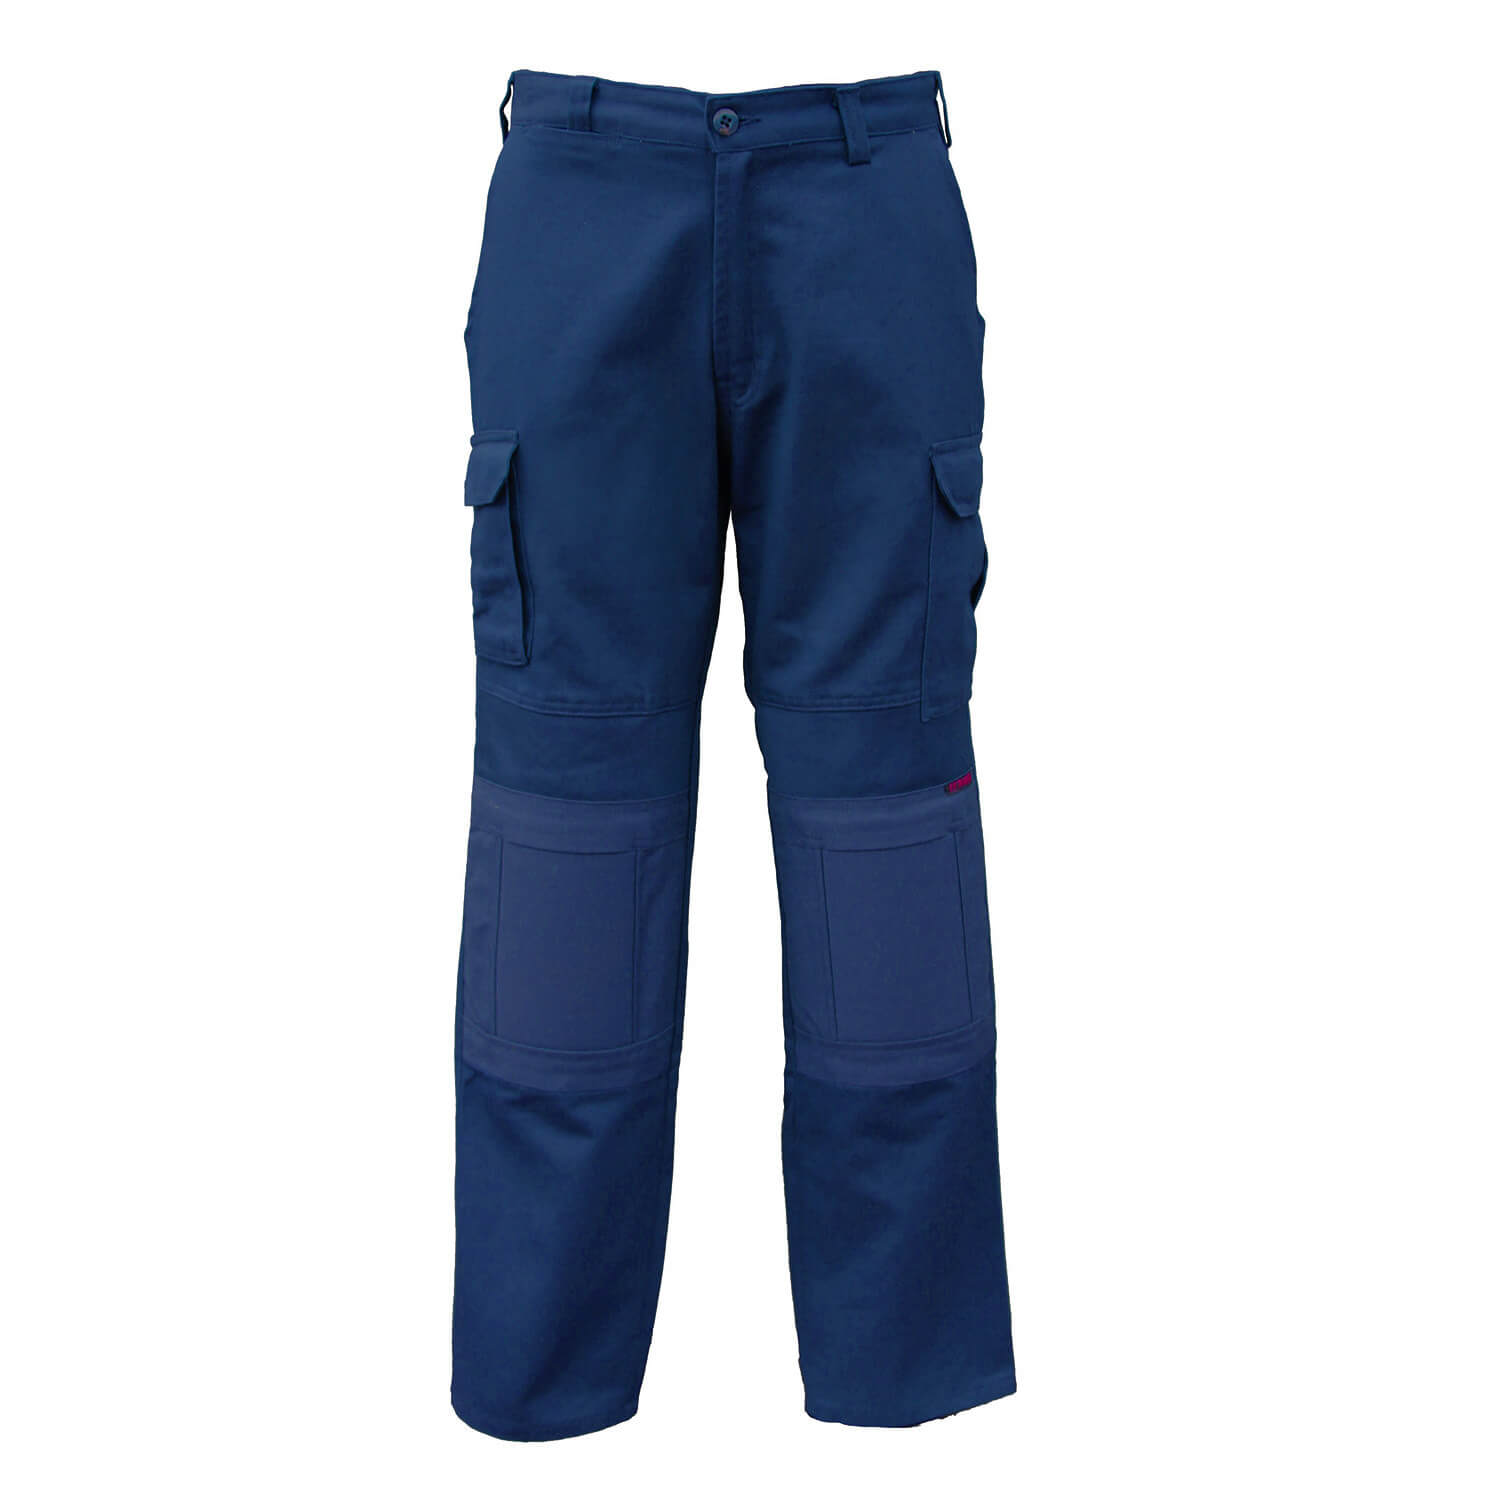 Eezneez Trousers Cushioned Knees Navy Front